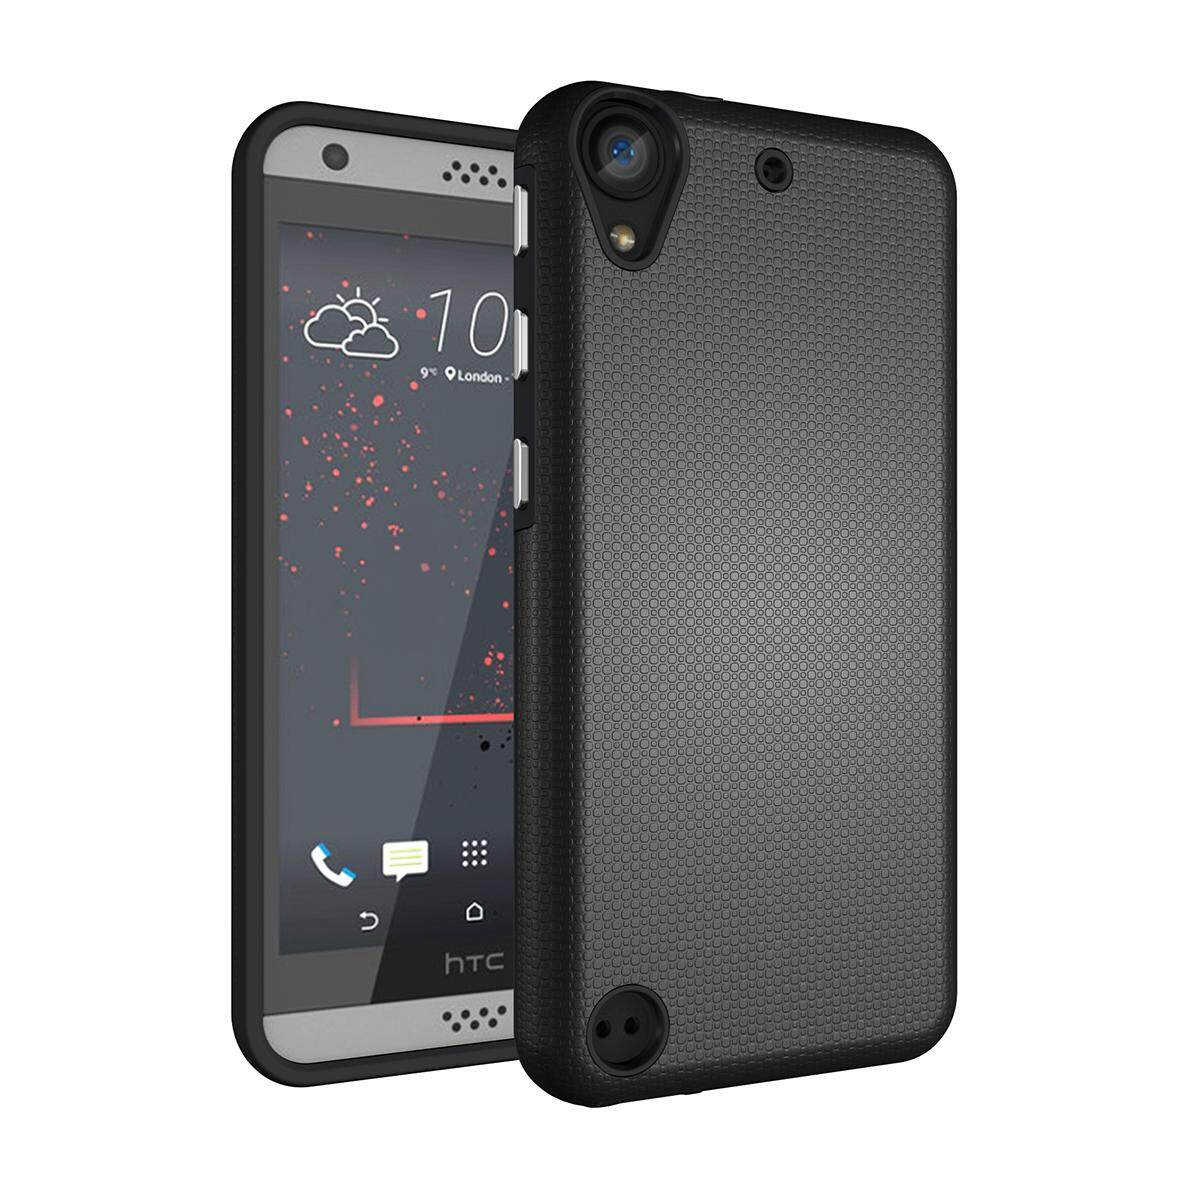 Meishengkai Case For HTC Desire 530 Anti Slip And Shatter Proof Hard PC + TPU 2 in 1 Protective Case Cover Black - intl